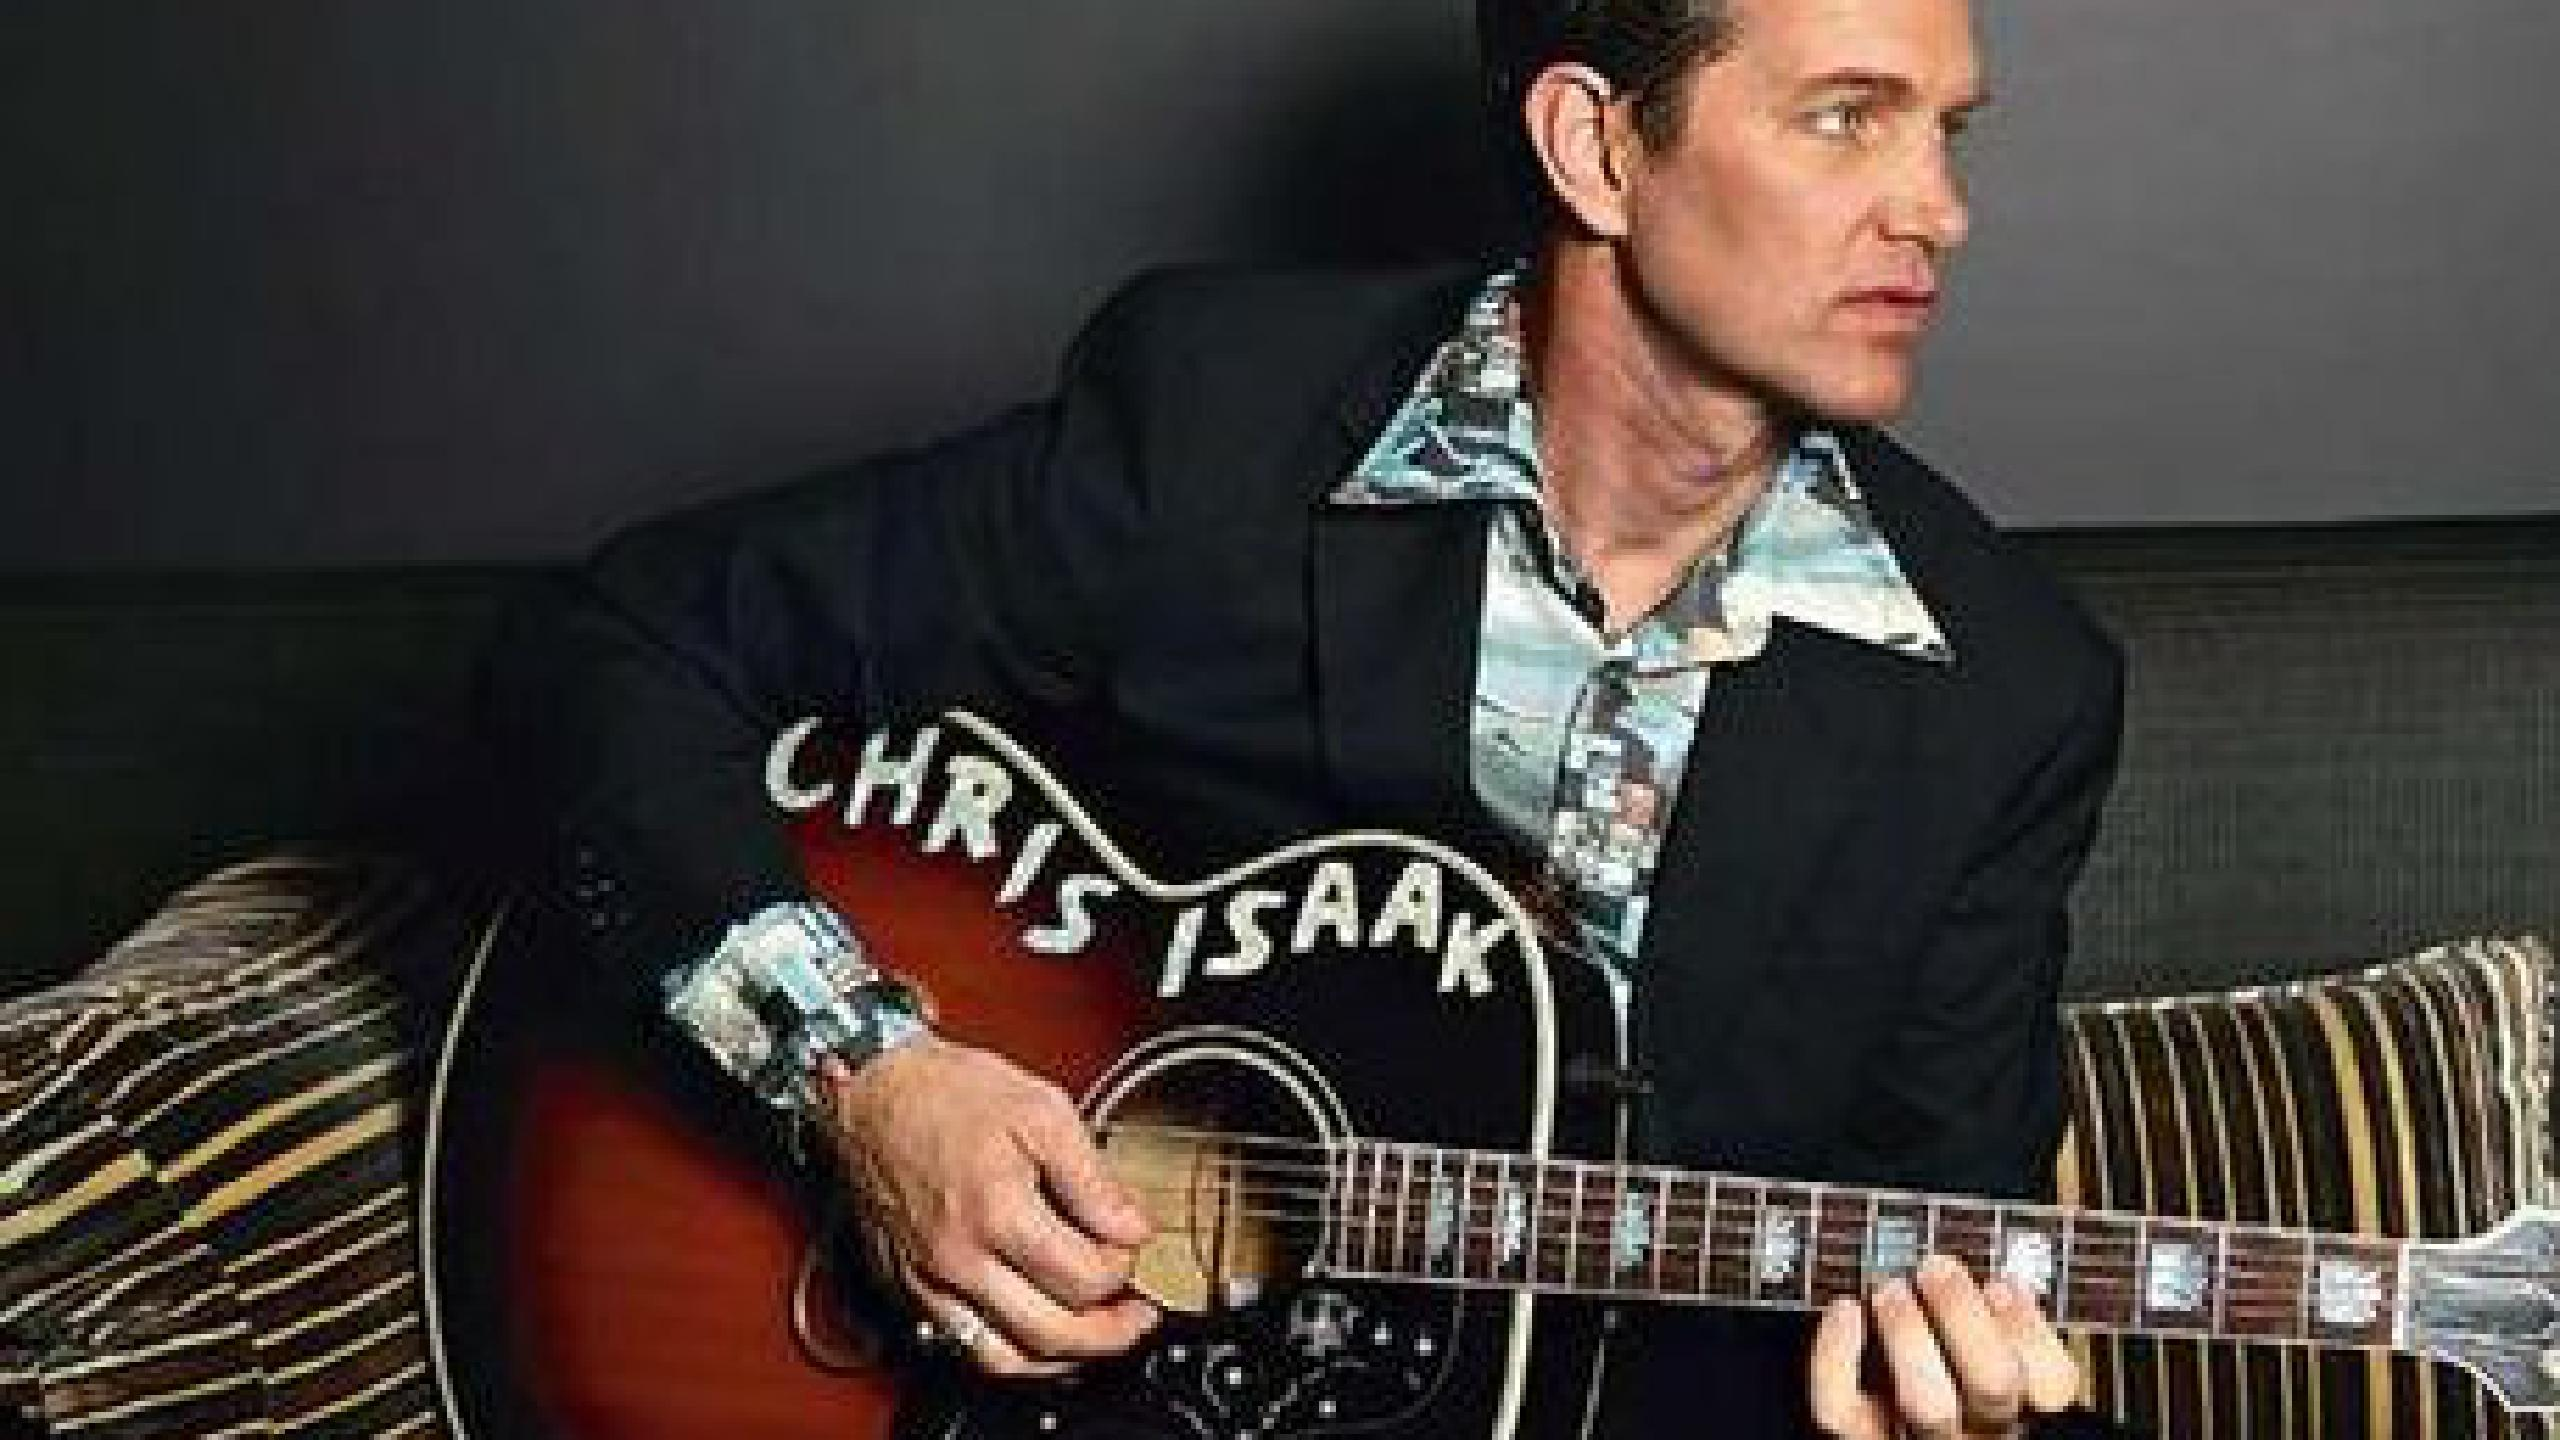 Chris mann concert dates